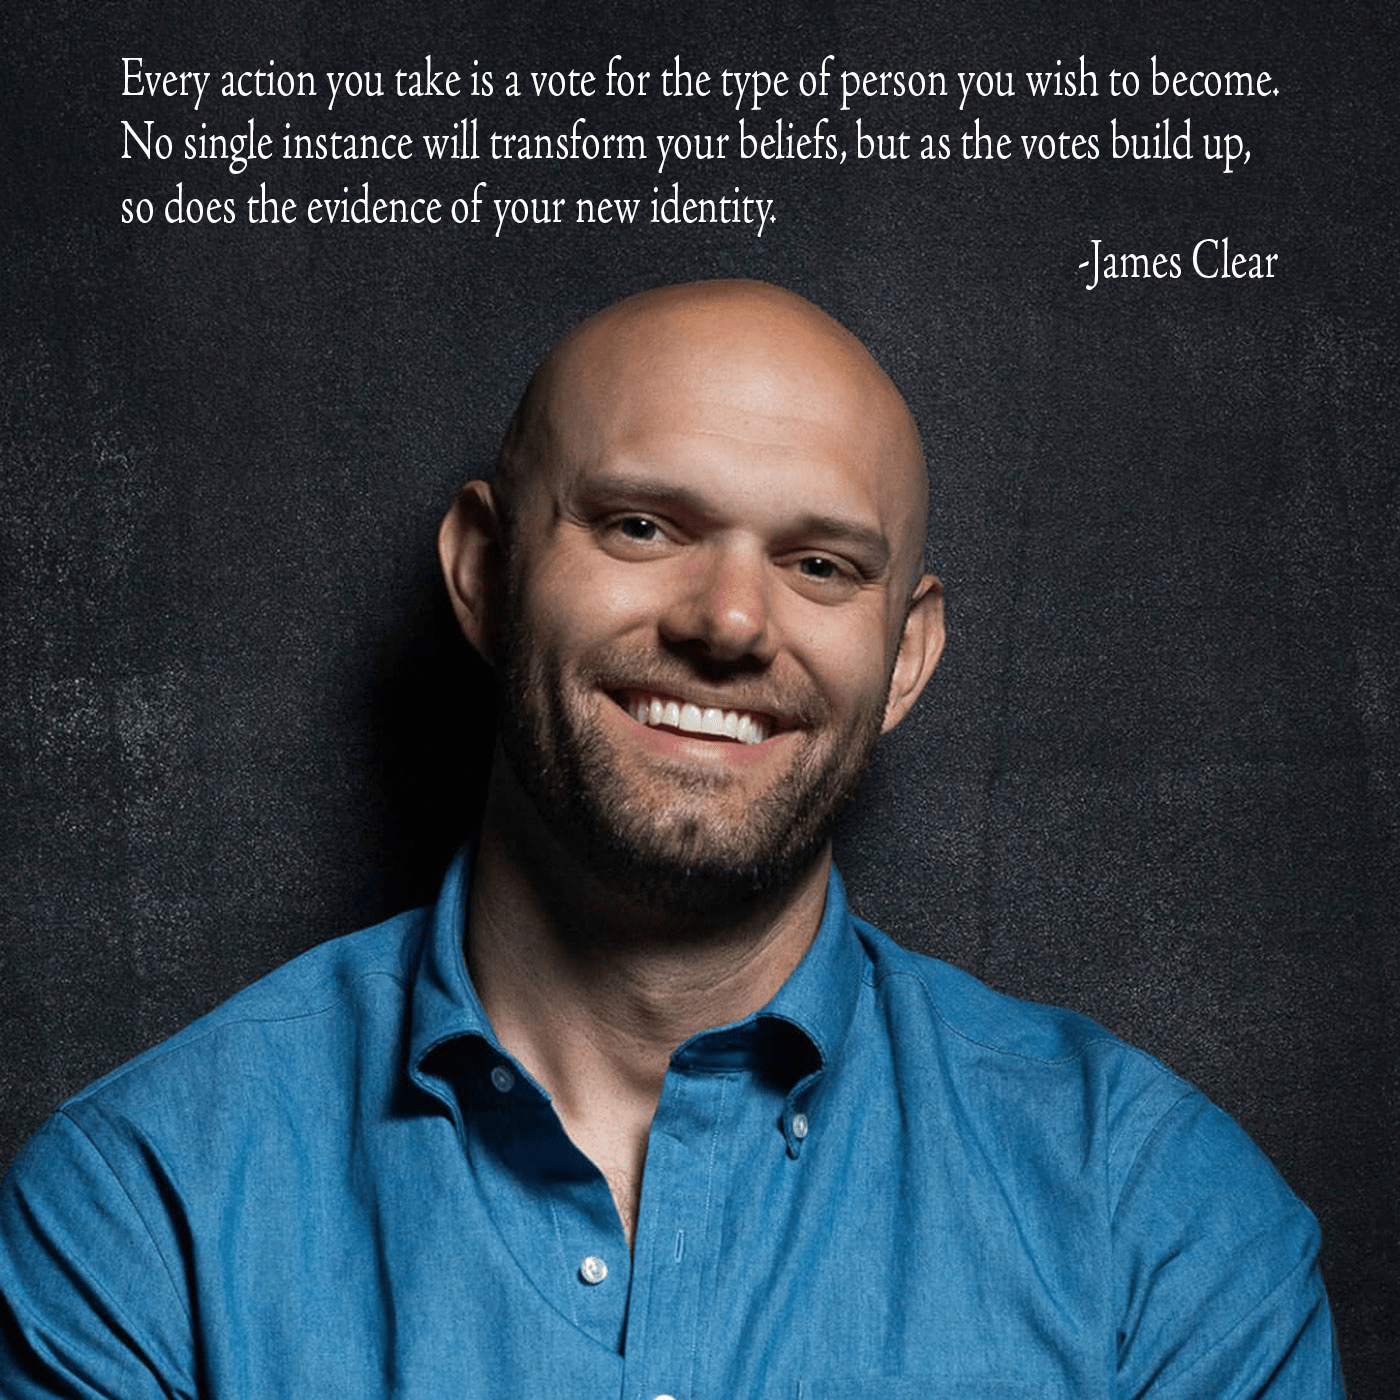 """Every action you take is a vote for the type of person you wish to become…"" – James Clear [OC] [1400×1400]"